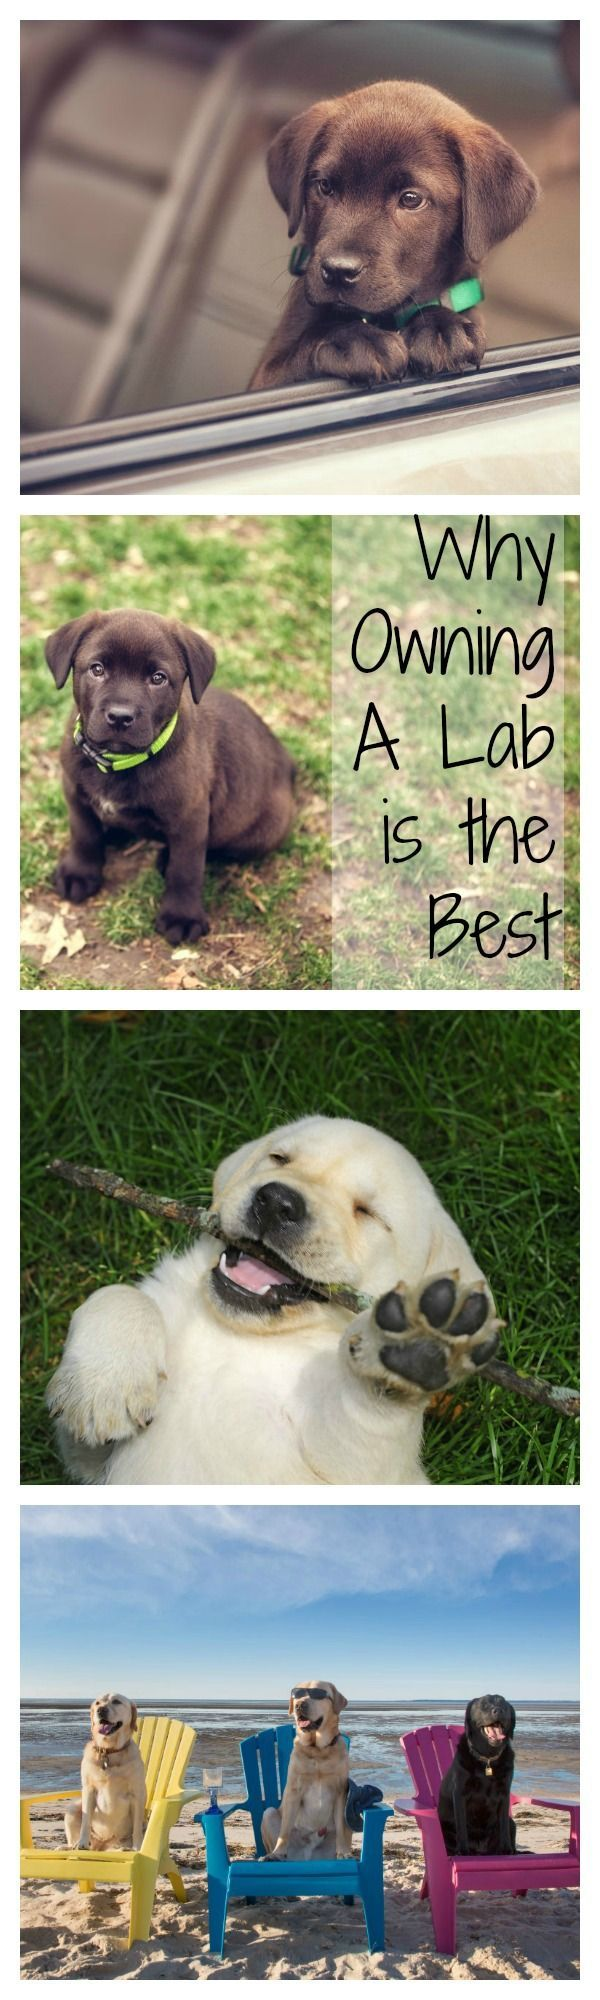 Wondering what type of dog you want to adopt? Well we love all pets and puppies, but here are 16 of the best things about owning a labrador retriever.